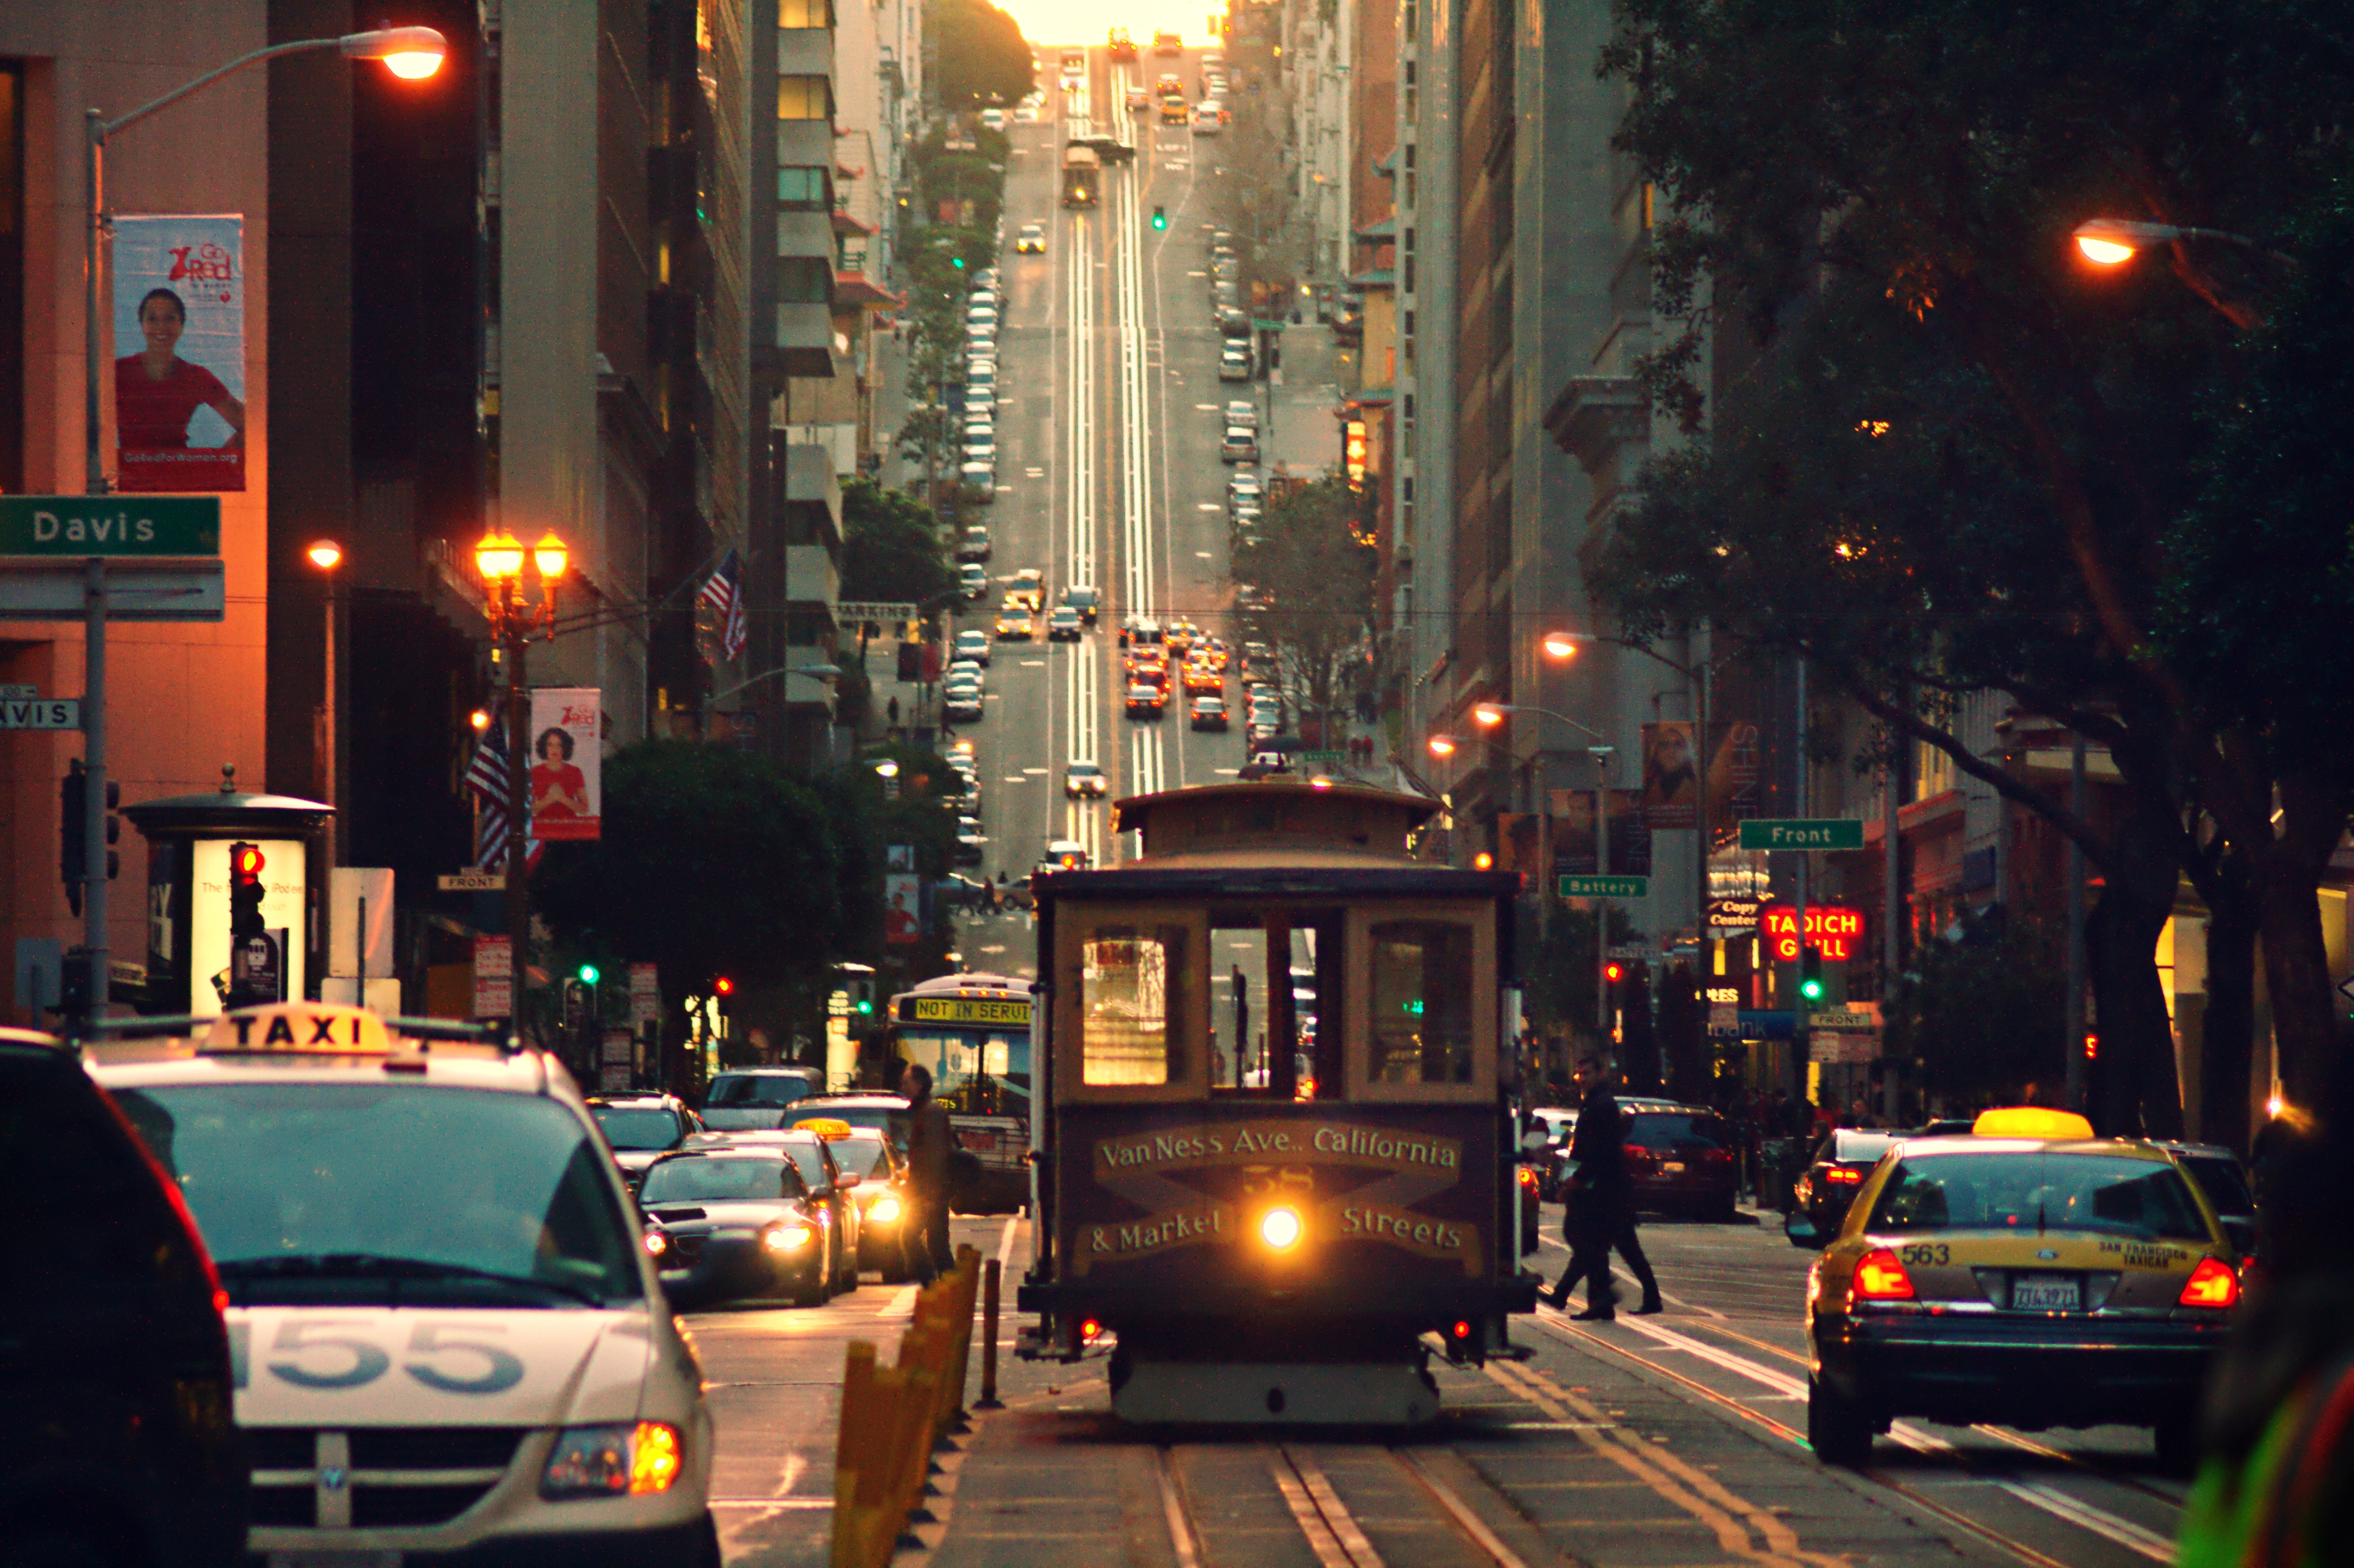 A crowded SF street, with cars, a cable car, and pedestrians.